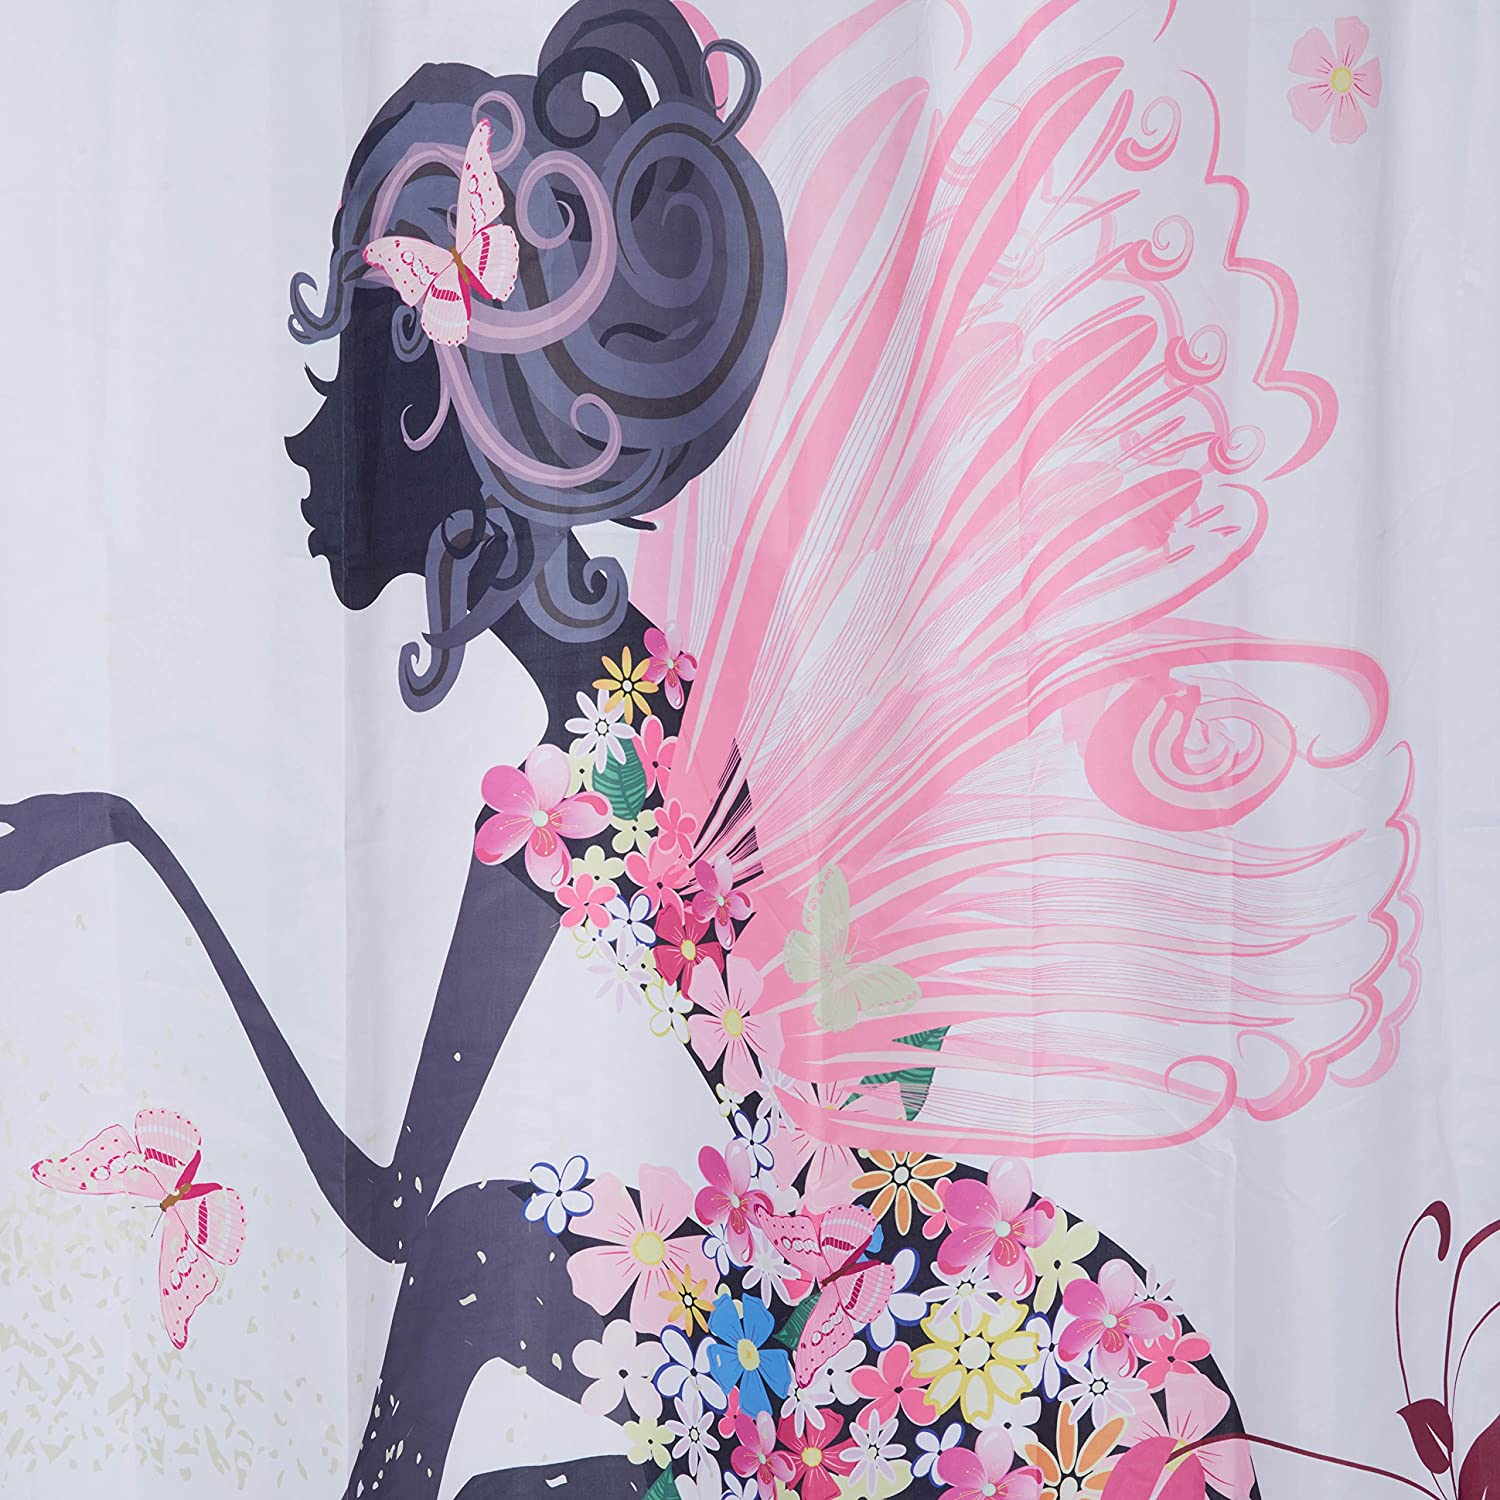 Beddingleer 180cm X180cm Butterfly Girl Pink Curtain Waterproof Mouldproof Fabric Bathroom Shower Curtain with Hooks Nature Series 71x71 Inch